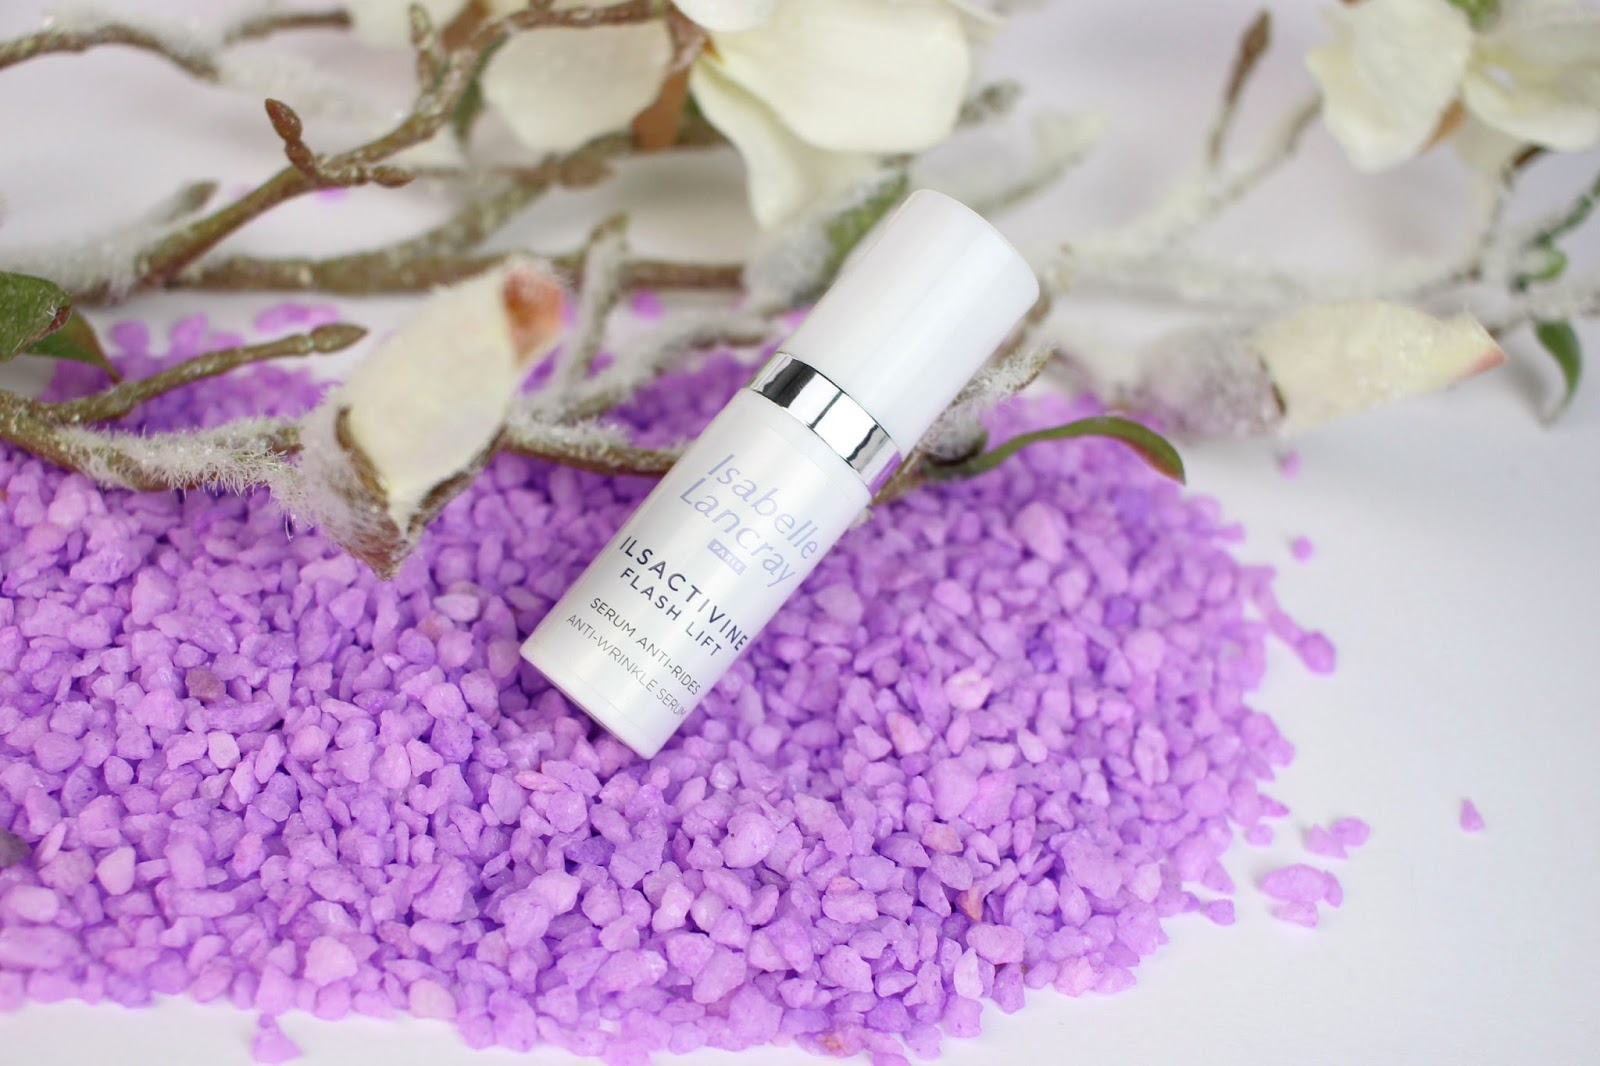 cosmetic college hannover, elixir volume plus, empfindliche haut, flash lift serum, gesichtstonic, hautpflege, Ilsactivine, Isabelle Lancray Paris, reinigungsmilch, review, skincare, trockene haut,